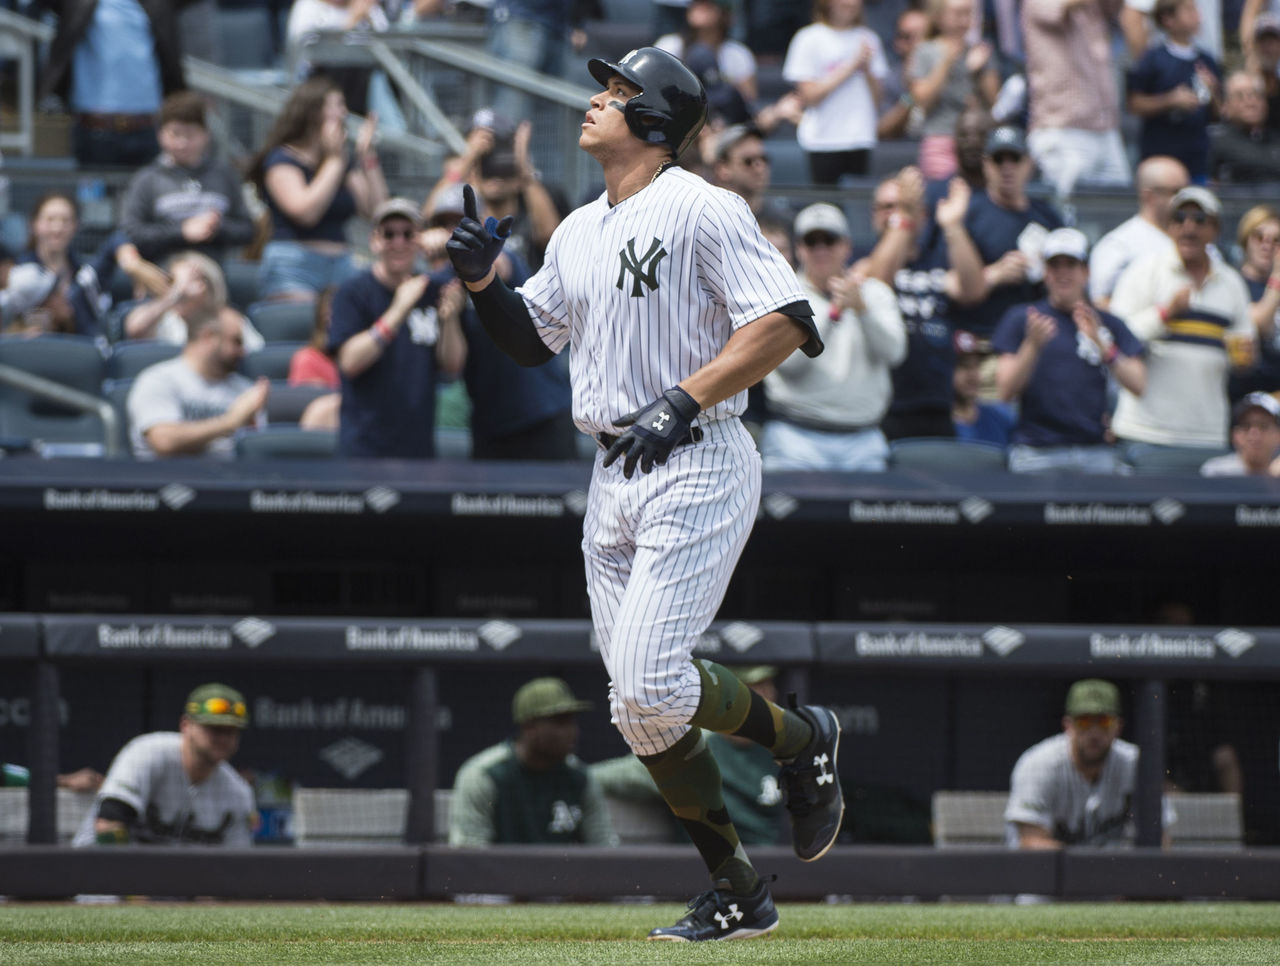 Cropped 2017 05 28t183052z 225824446 nocid rtrmadp 3 mlb oakland athletics at new york yankees